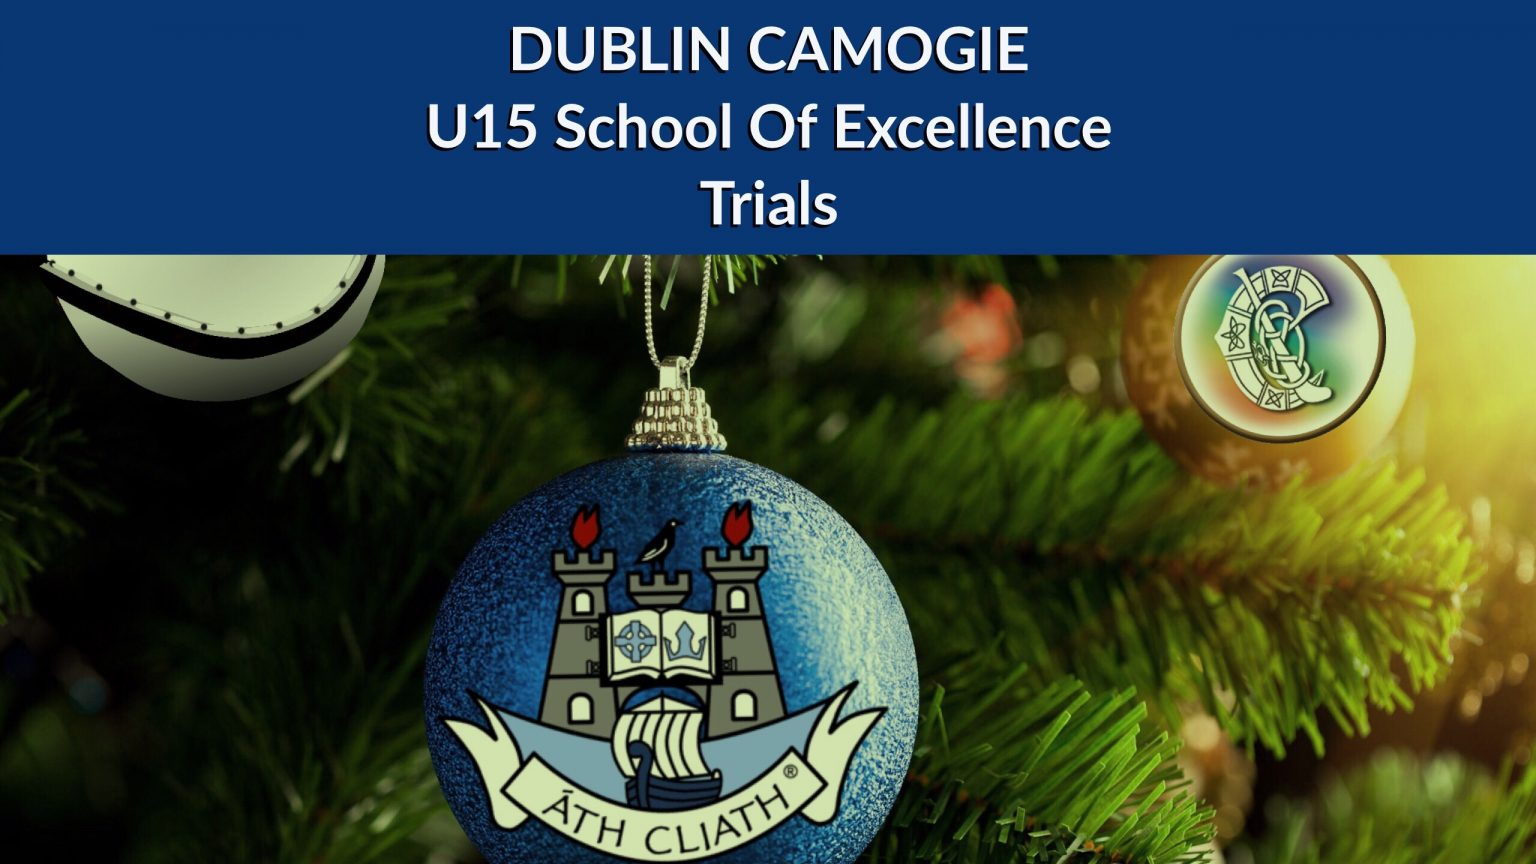 DUBLIN CAMOGIE COUNTY BOARD SEEK NOMINATIONS FOR U15 SCHOOLS OF EXCELLENCE TRIALS